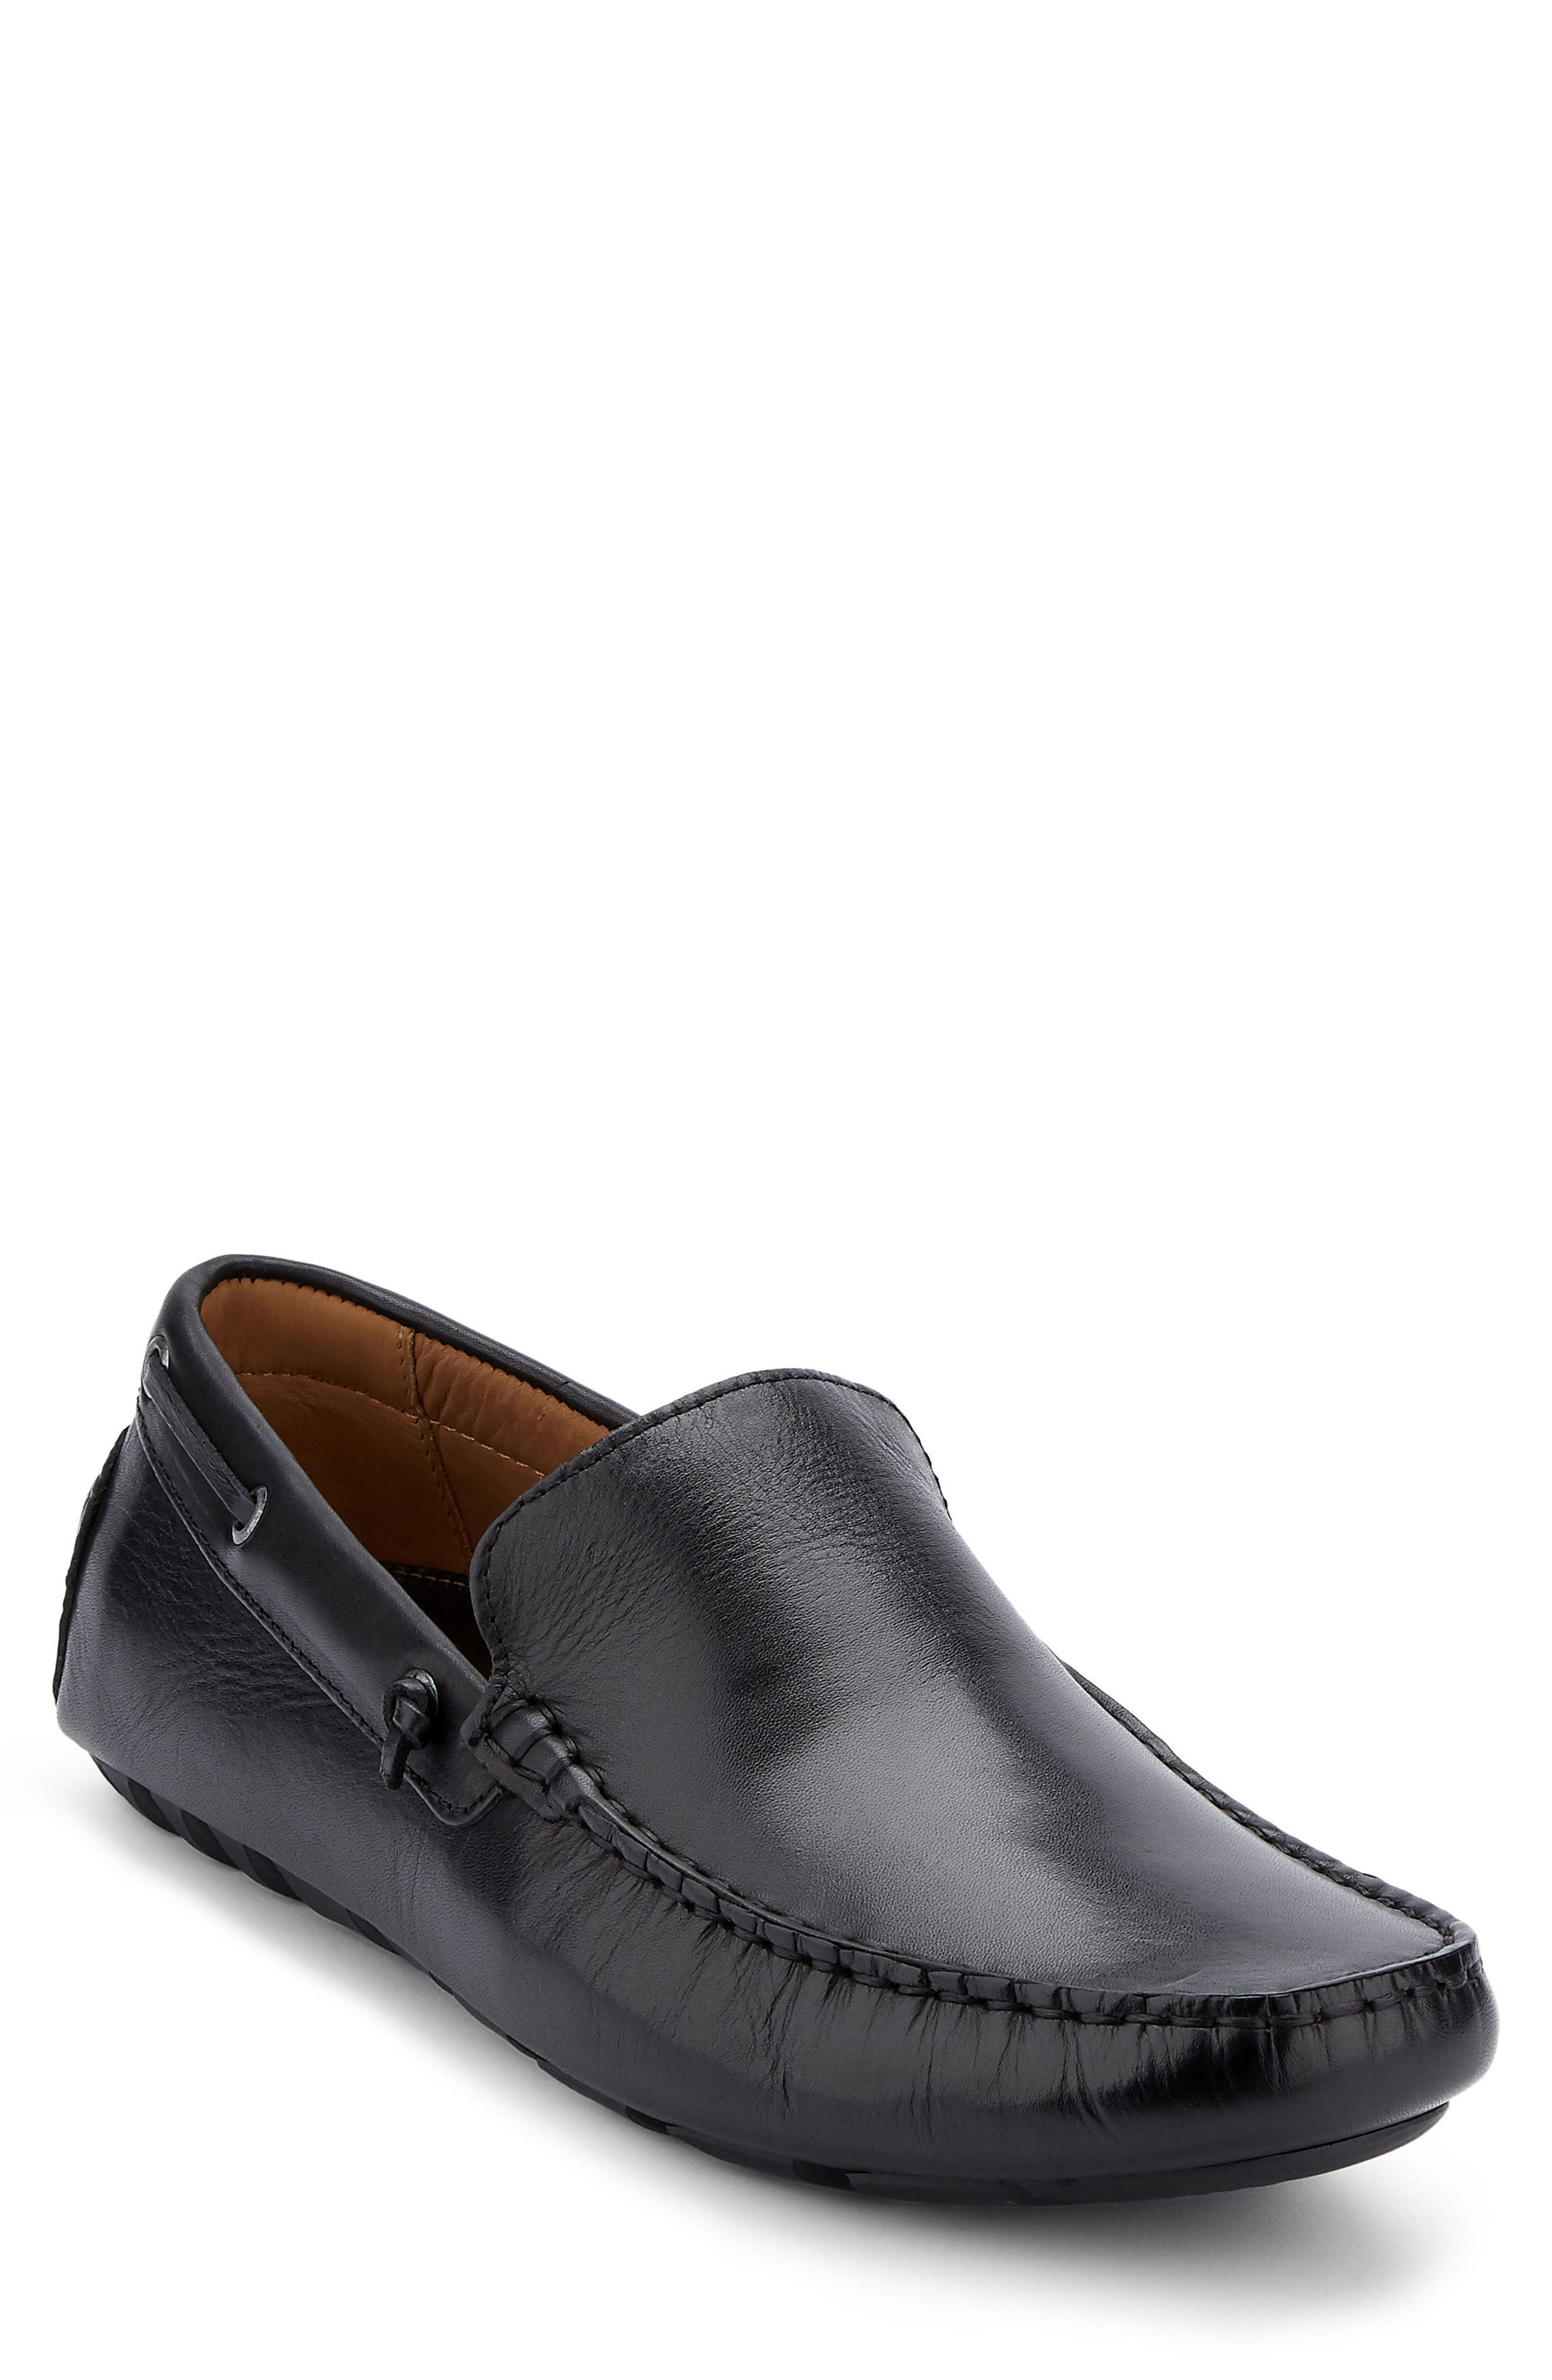 G.H. BASS & CO. Walter Driving Shoe, Main, color, BLACK